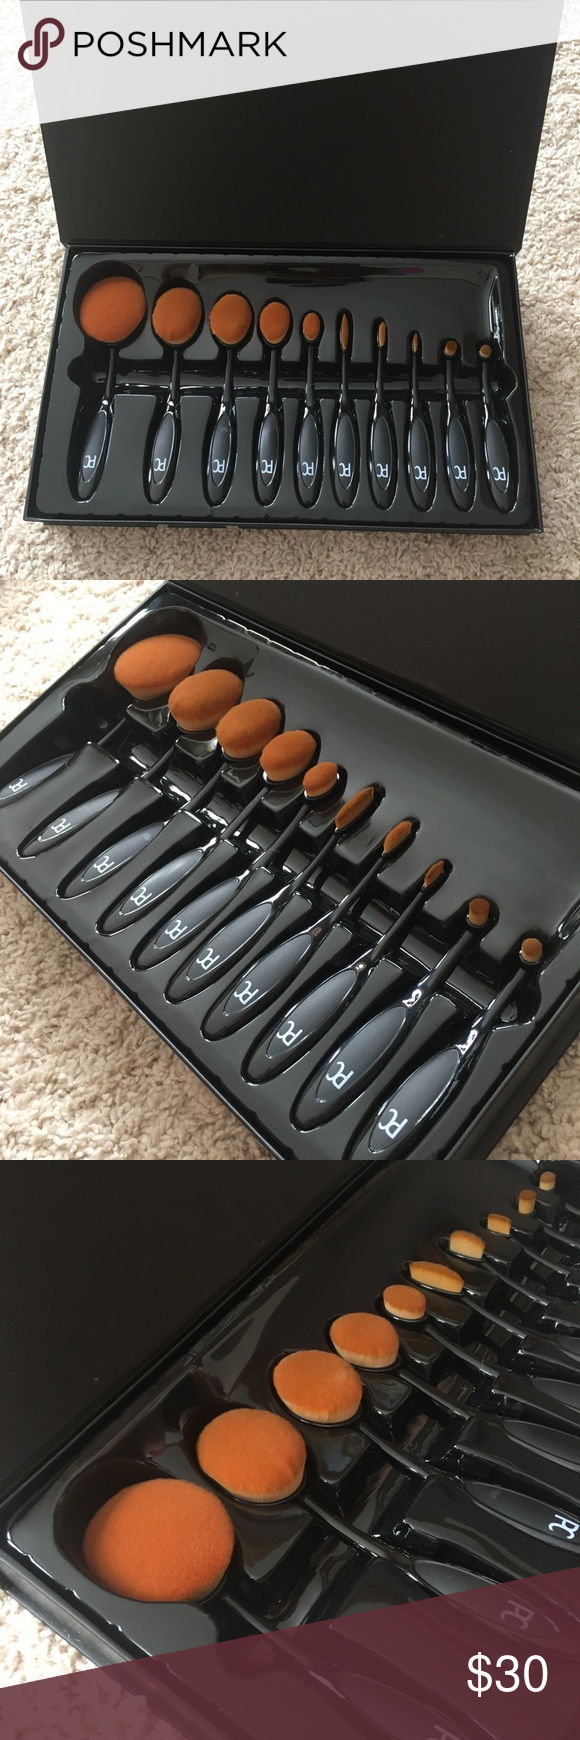 Oval brushes! Brand new soft brushes. For the face